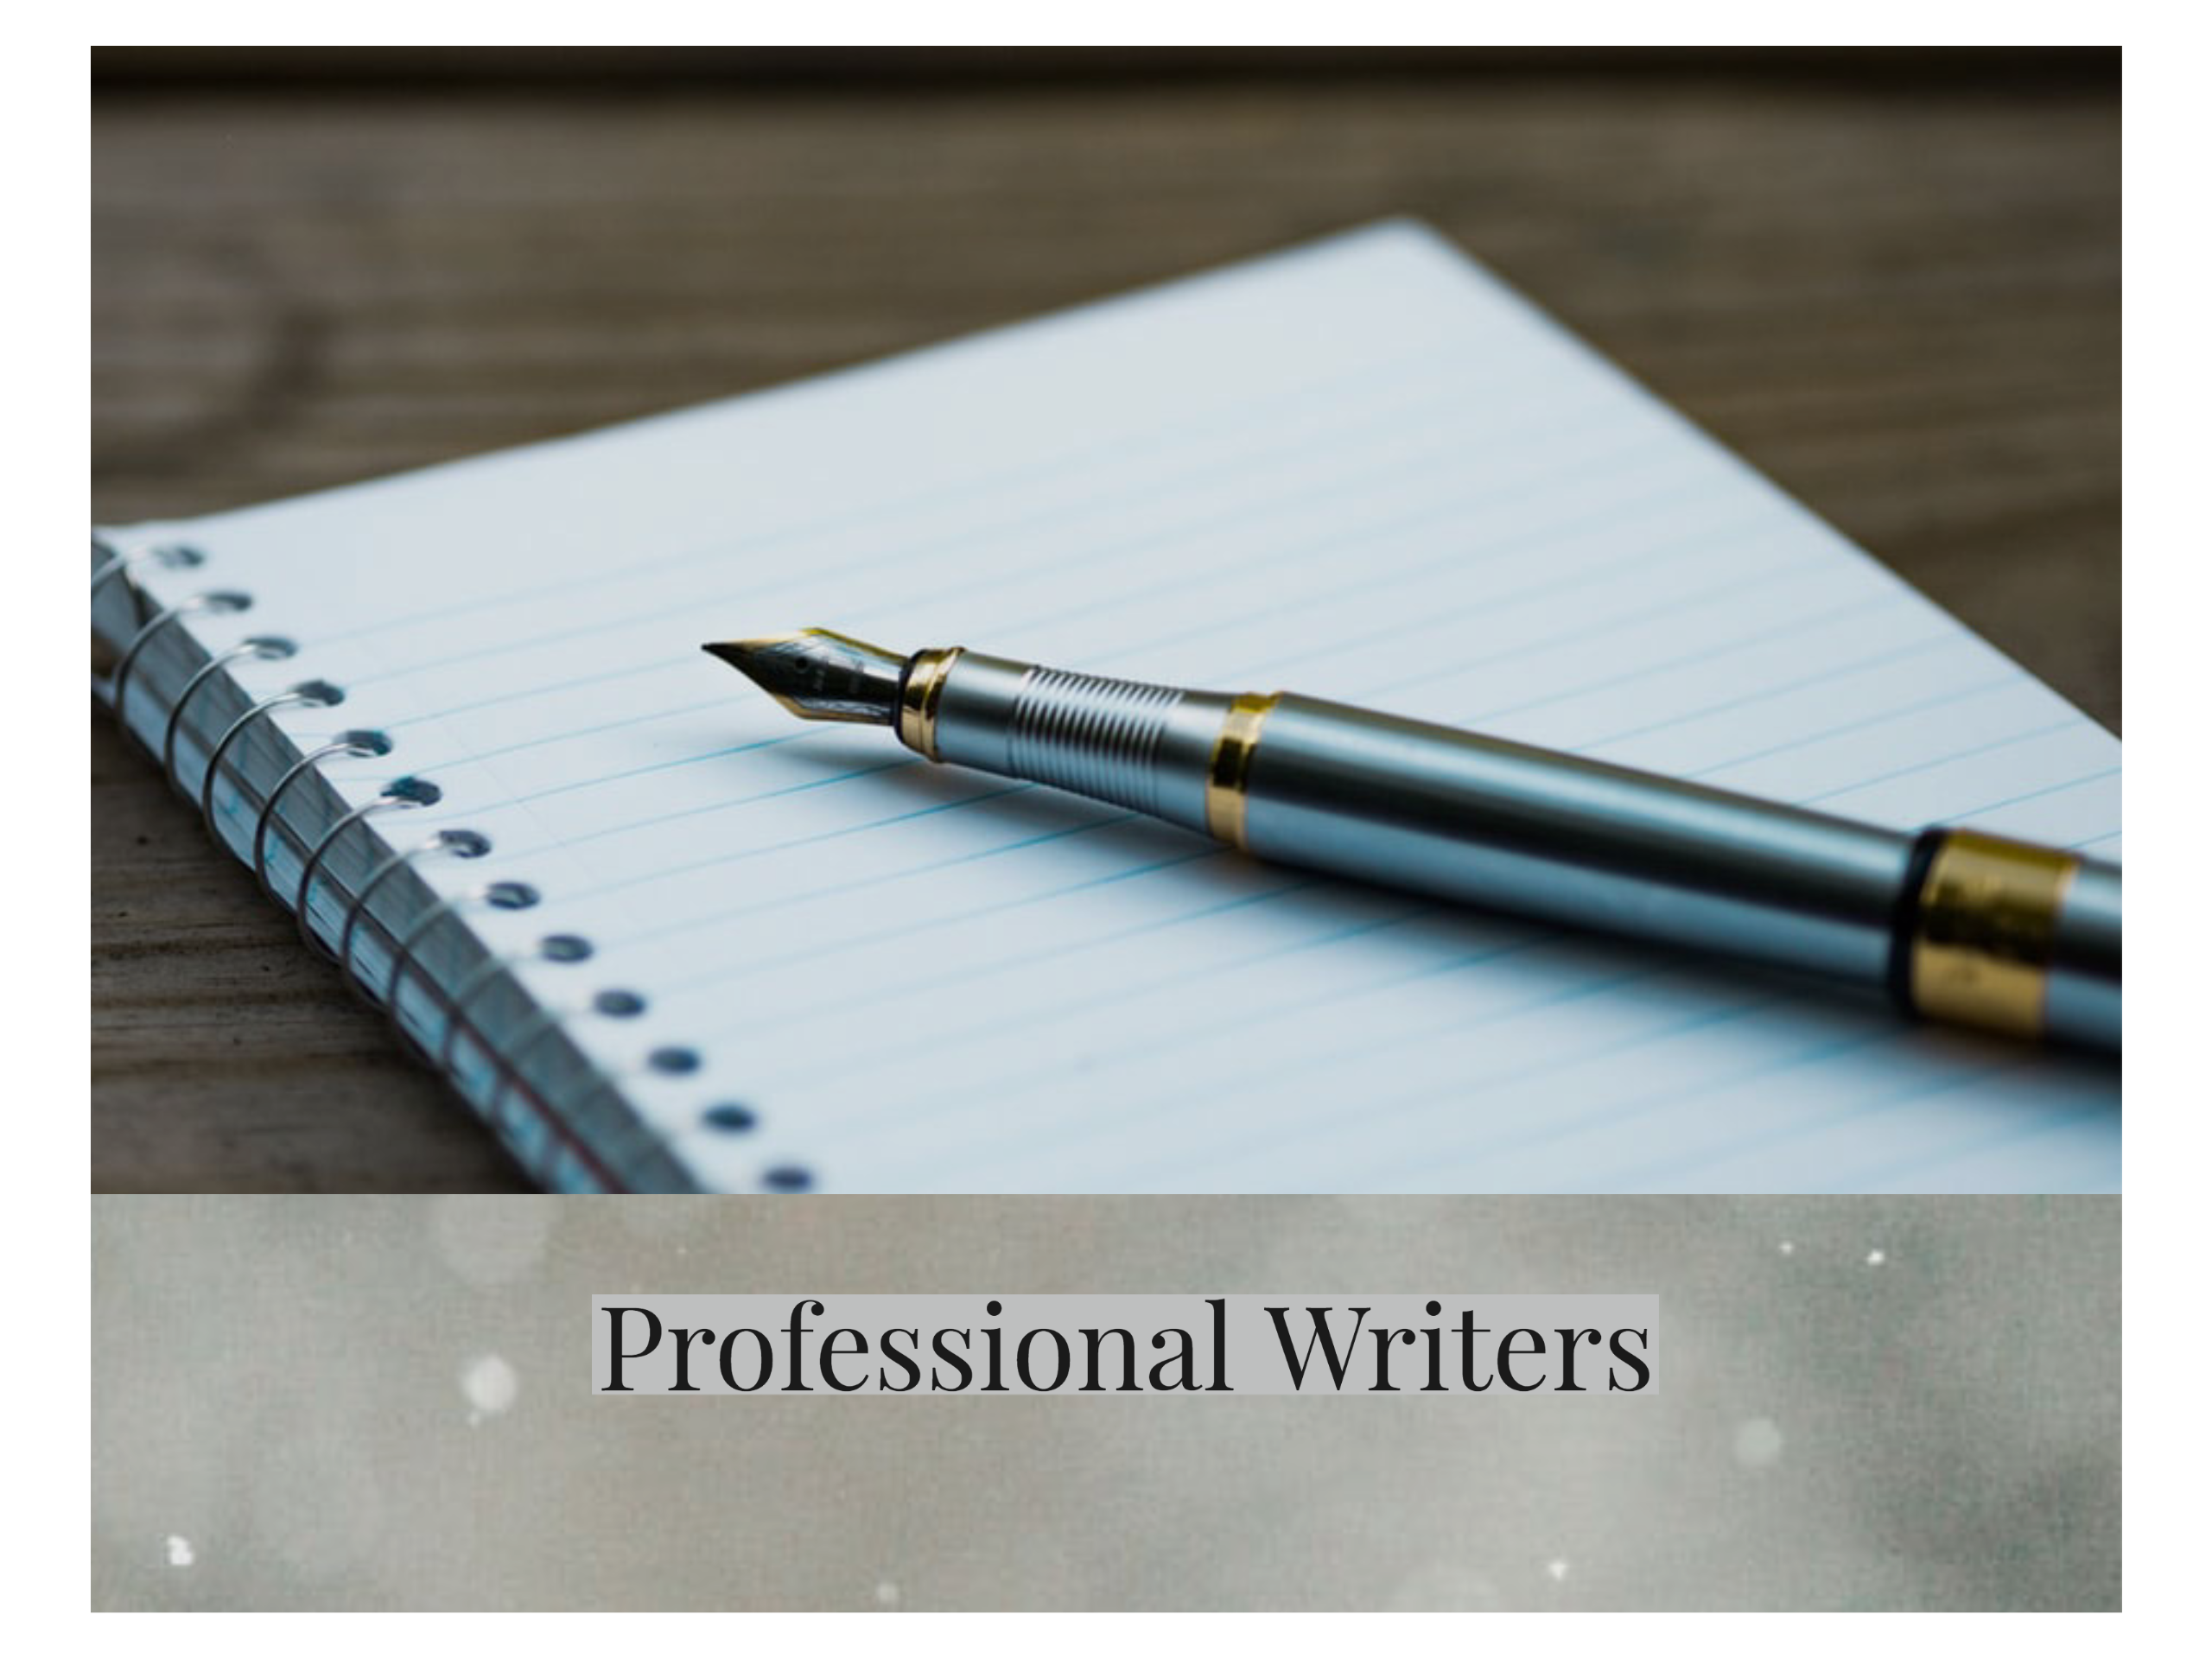 Writing Professionals